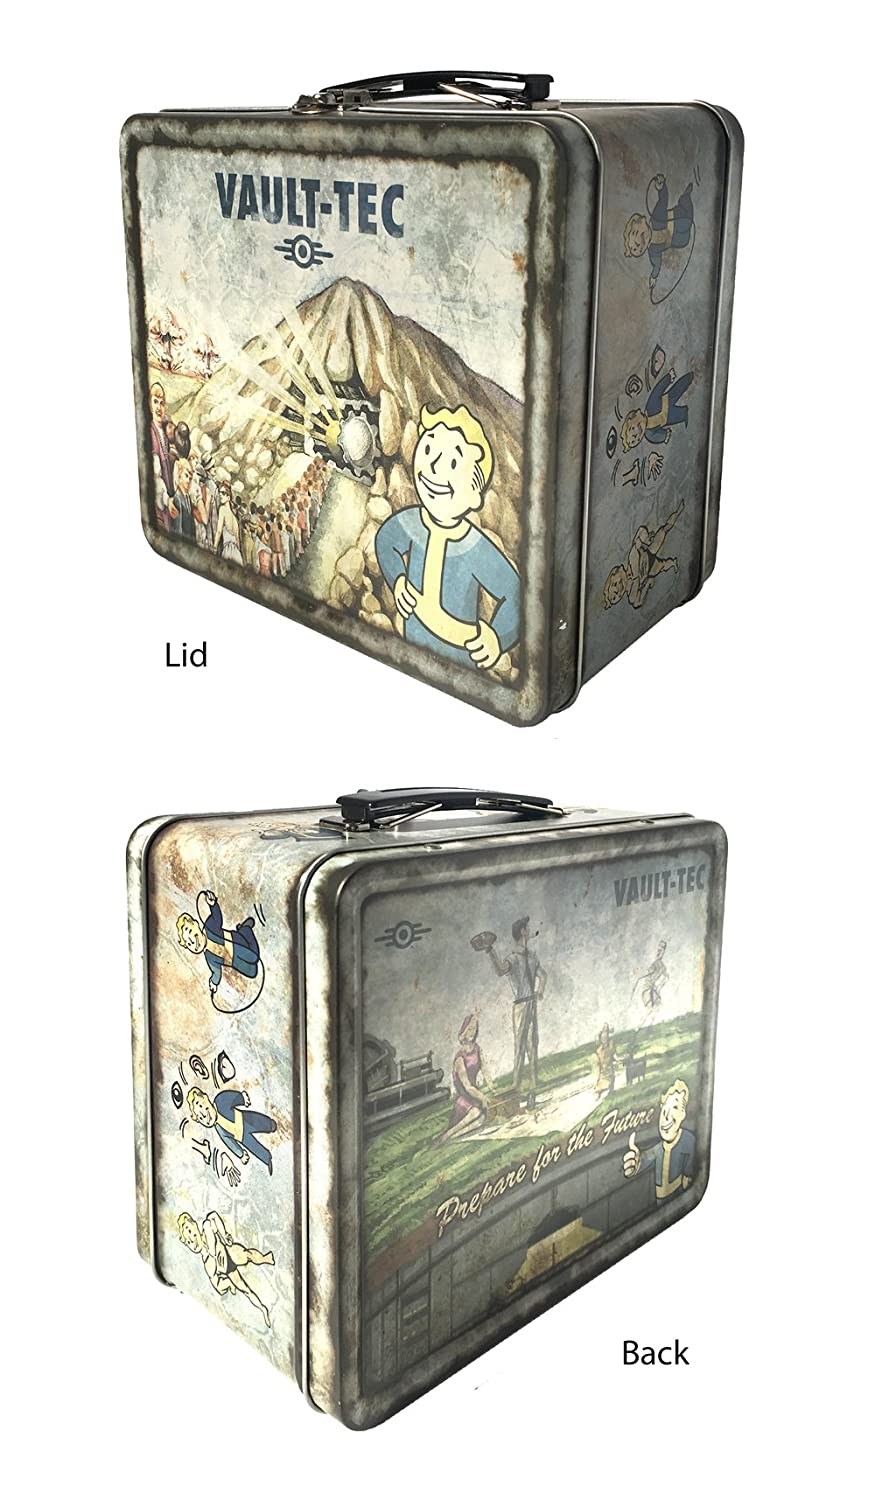 FanWraps Fallout 4 Vault-Tec Weathered Tin Tote Replica by FanWraps Inc. FWFO 3001